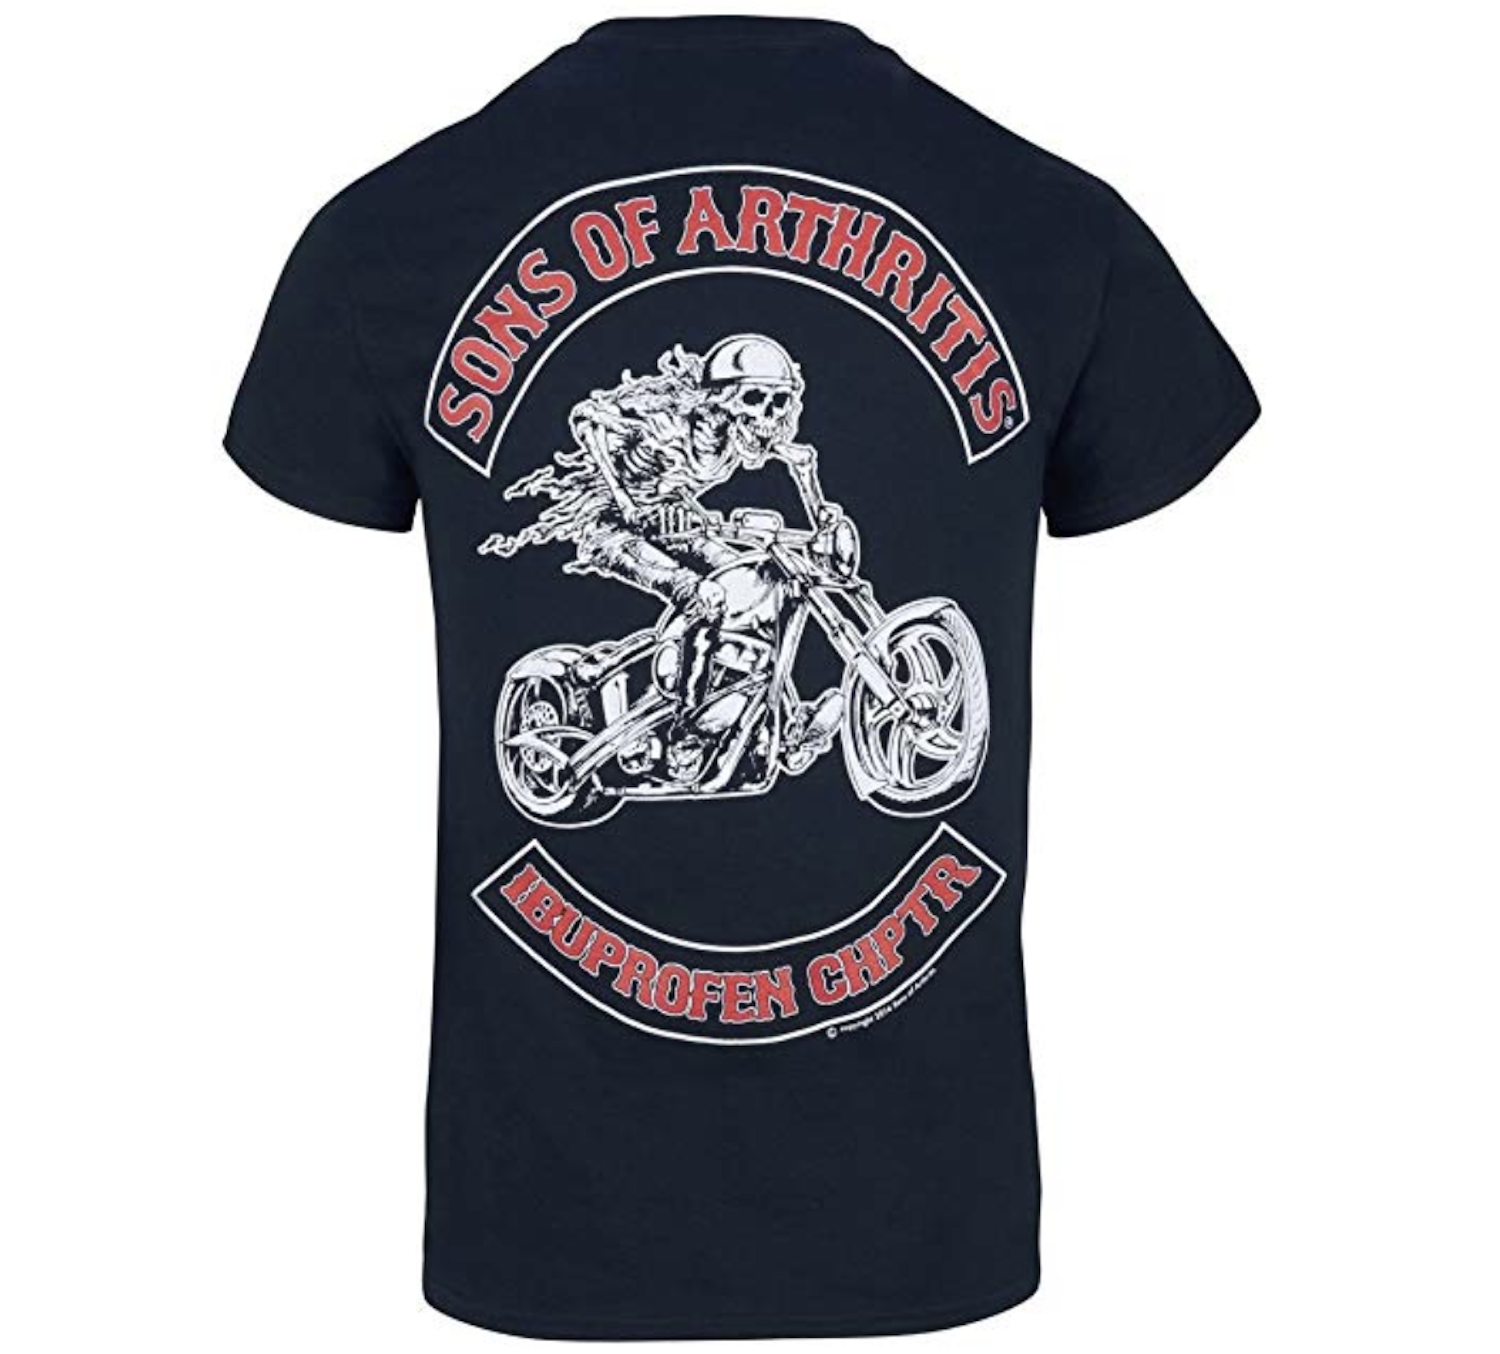 Sons of Arthritis shirt